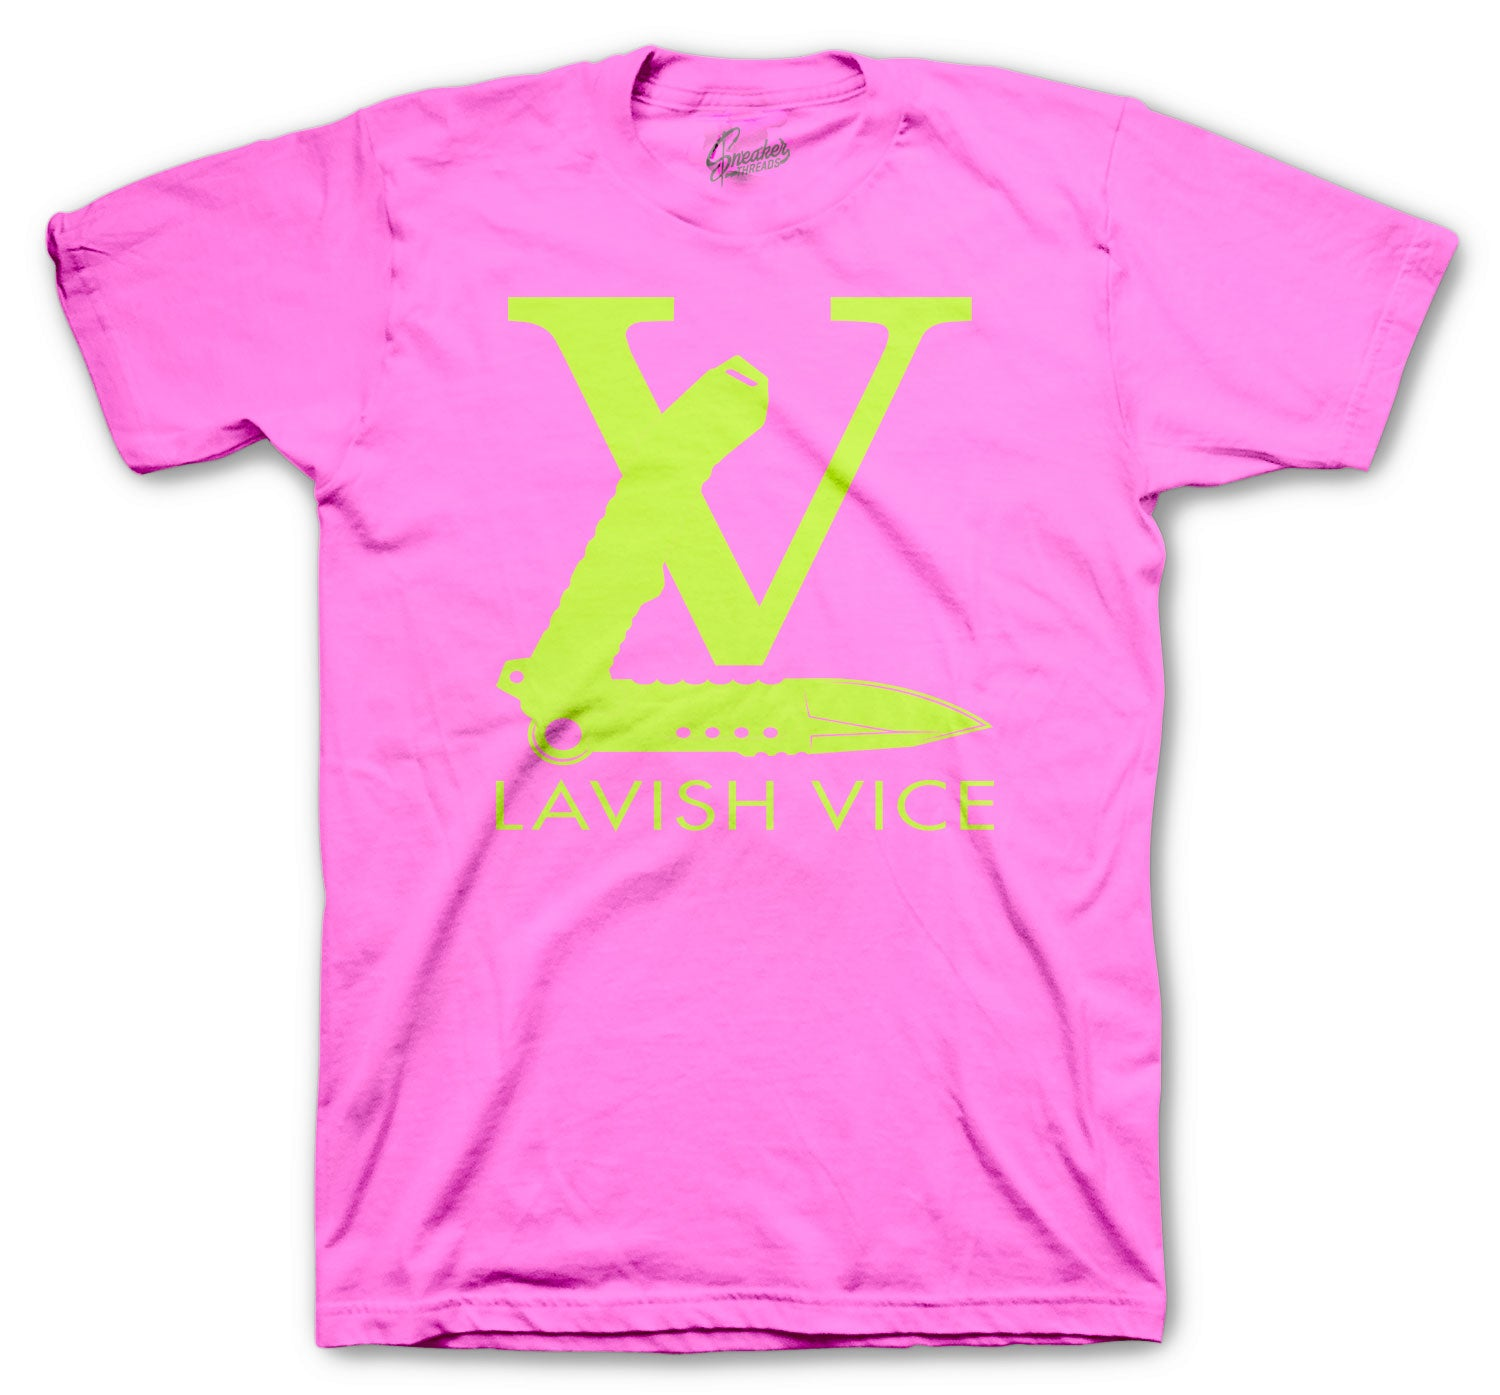 Jordan 4 Lemon Venom matching t shirts